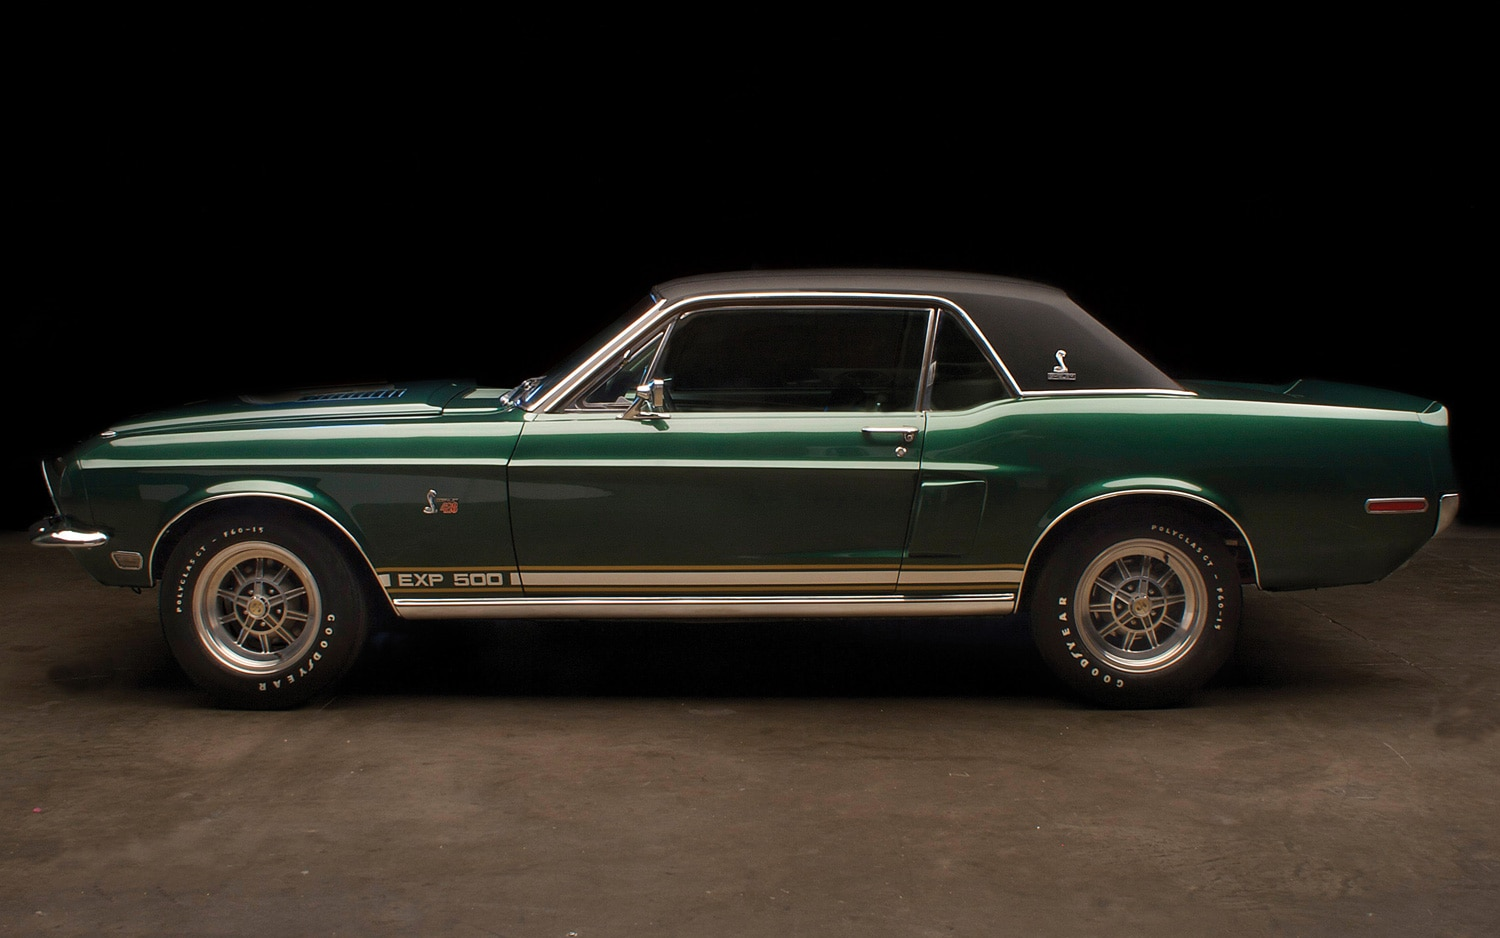 1968 Shelby Mustang EXP 500 Prototype Side View1